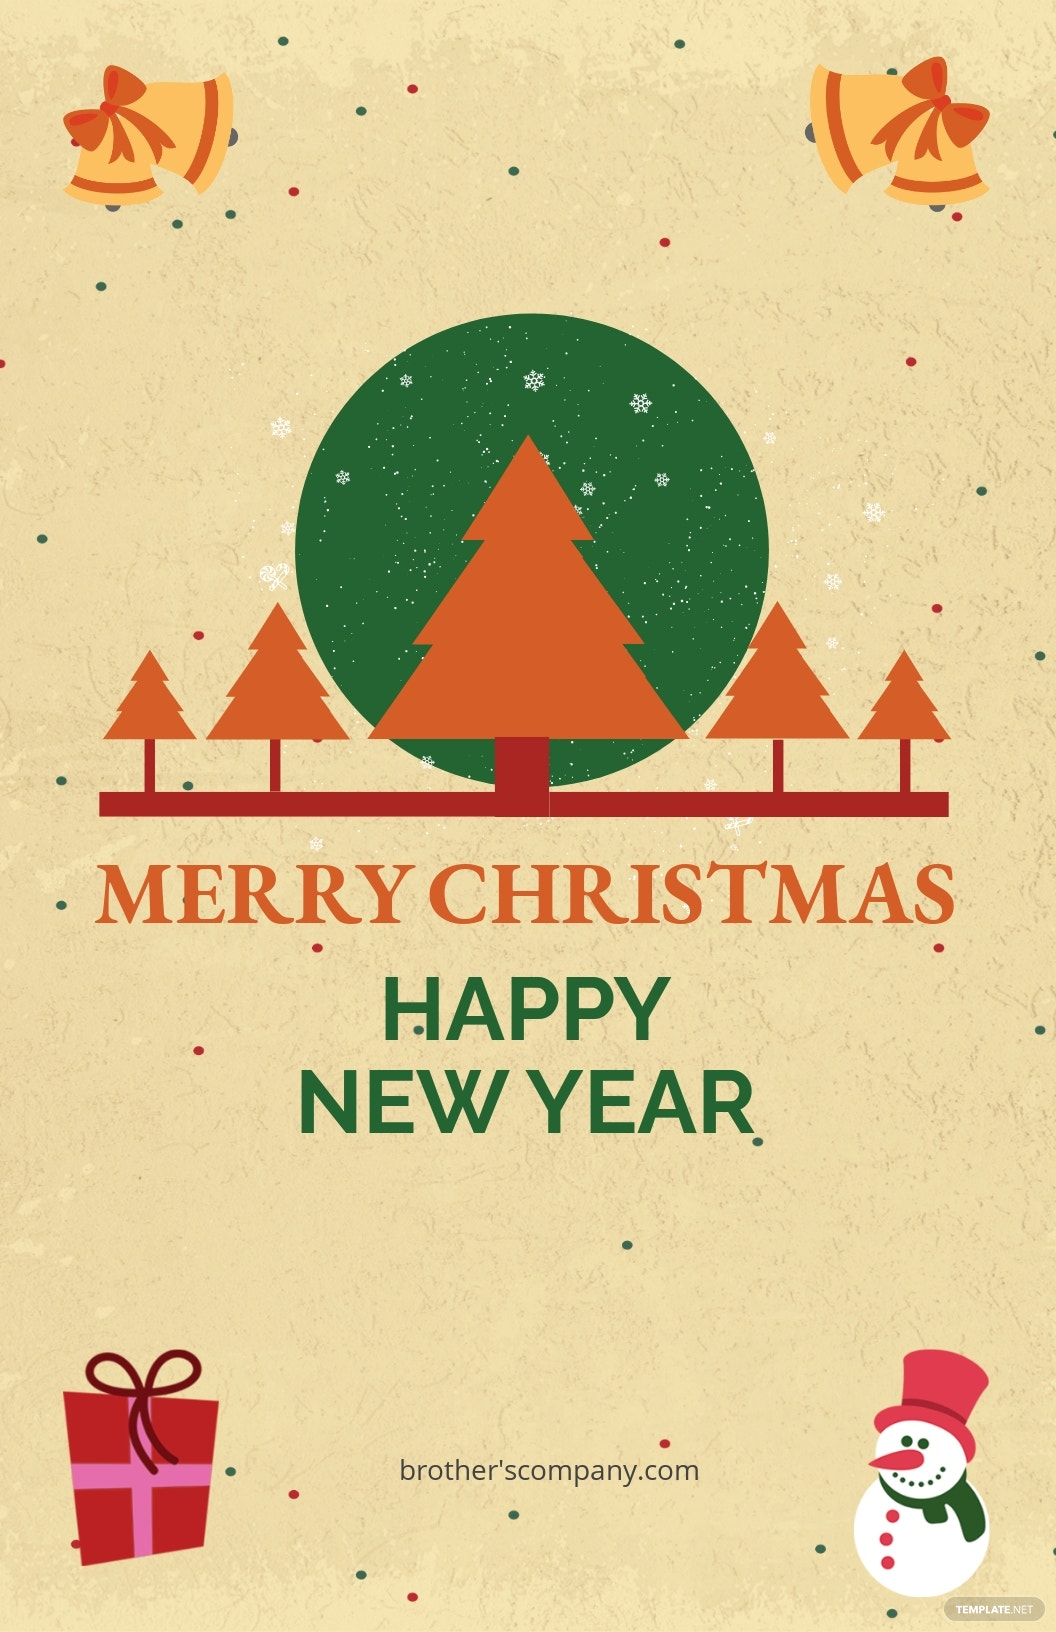 Free Merry Christmas and New Year Poster Template.jpe